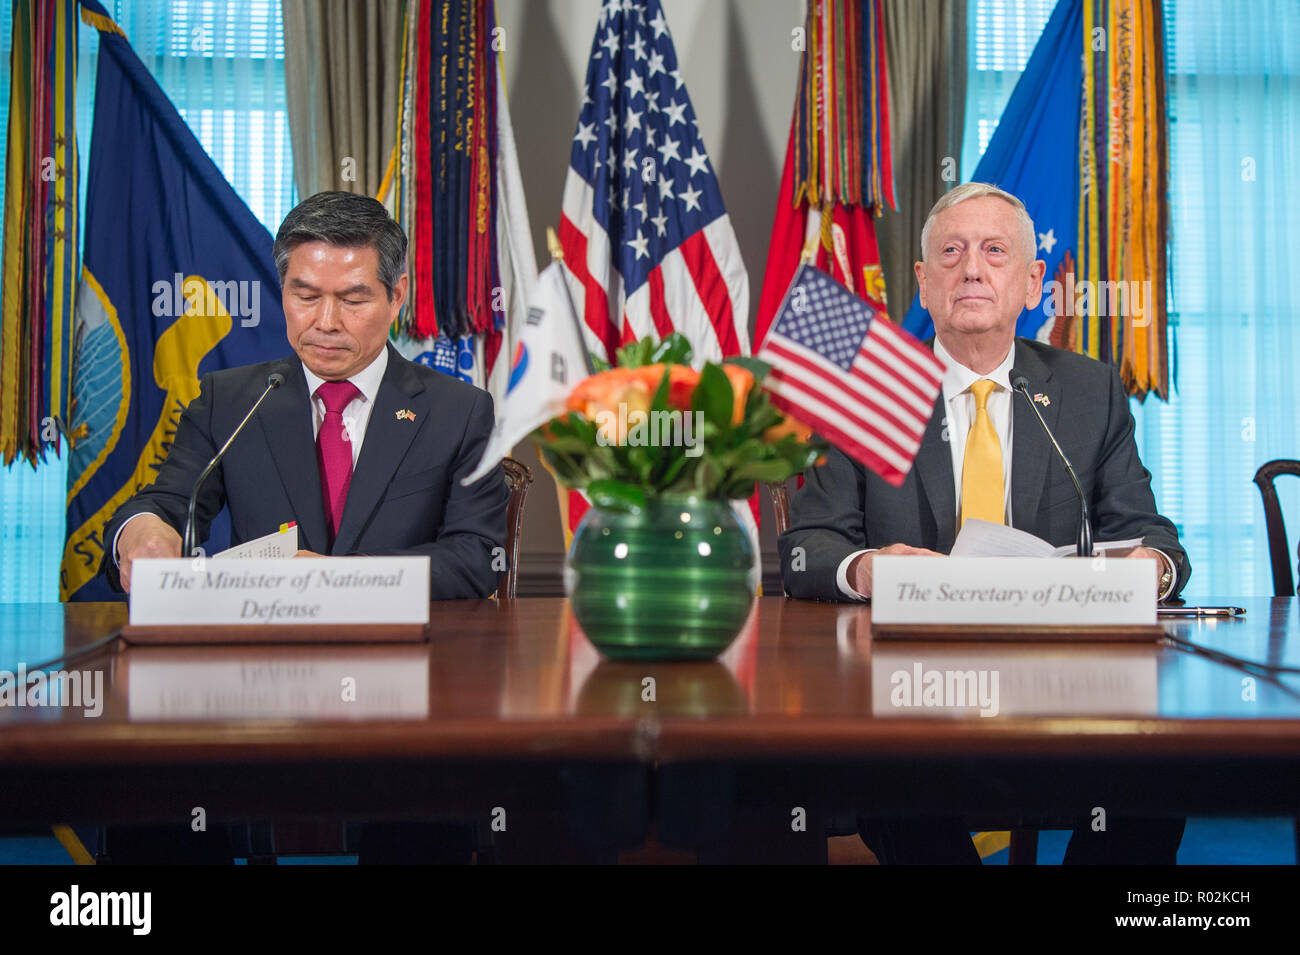 U.S. Secretary of Defense James N. Mattis meets with the Minister of Defense for the Republic of Korea Jeong Kyeong-doo during the U.S. hosted 2018 Security Consultative Meeting at the Pentagon, Washington, D.C., Oct. 31, 2018. (DoD photo by U.S. Air Force Master Sgt. Angelita Lawrence) Stock Photo